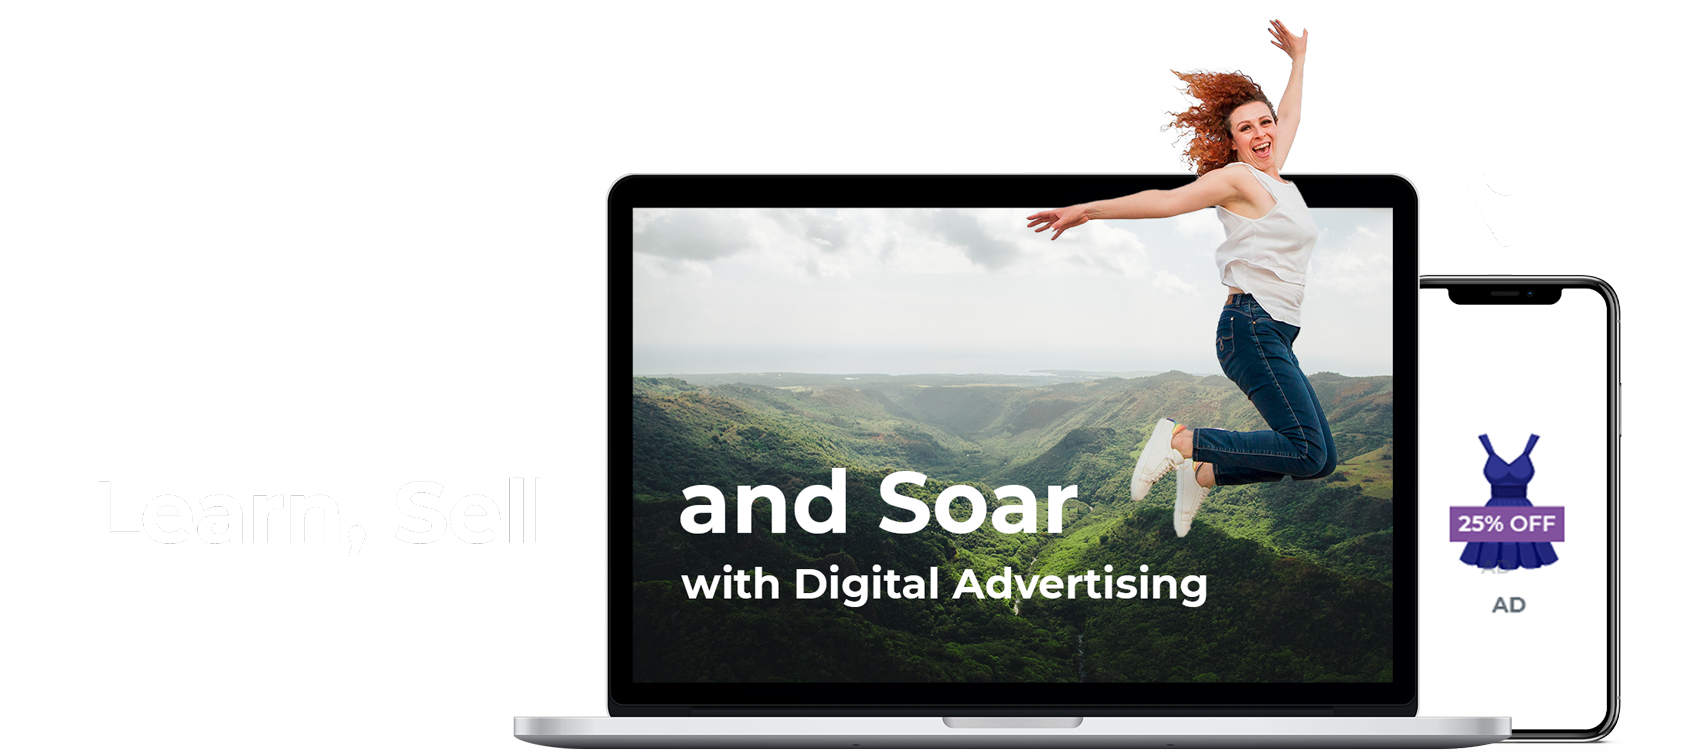 Learn, Sell and Soar with Digital Advertising